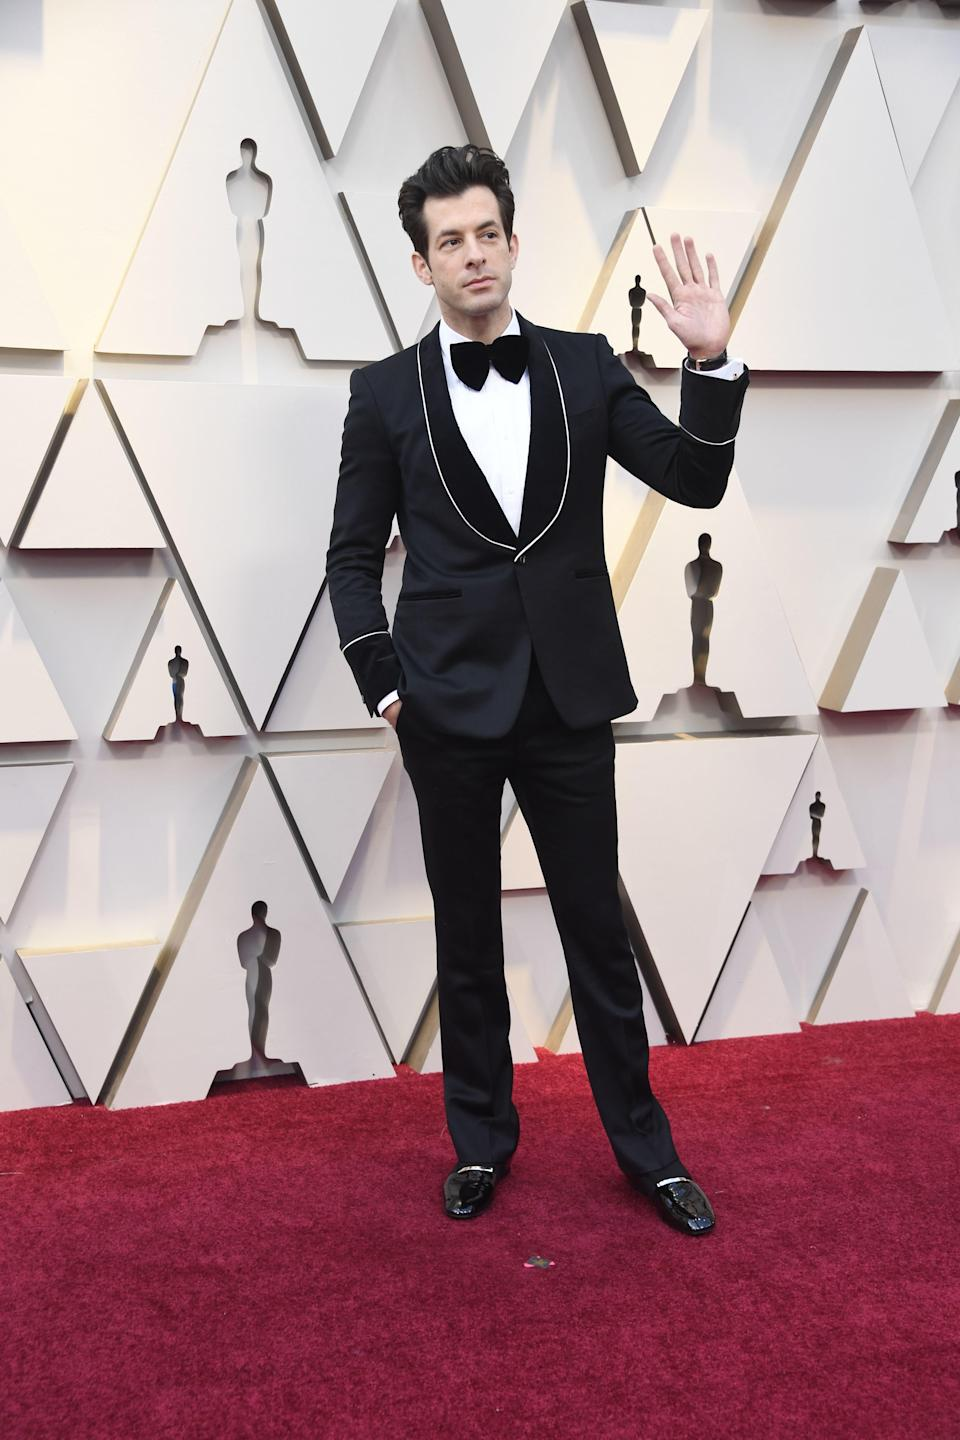 Mark Ronson in Chopard jewelry and Roger Vivier shoes